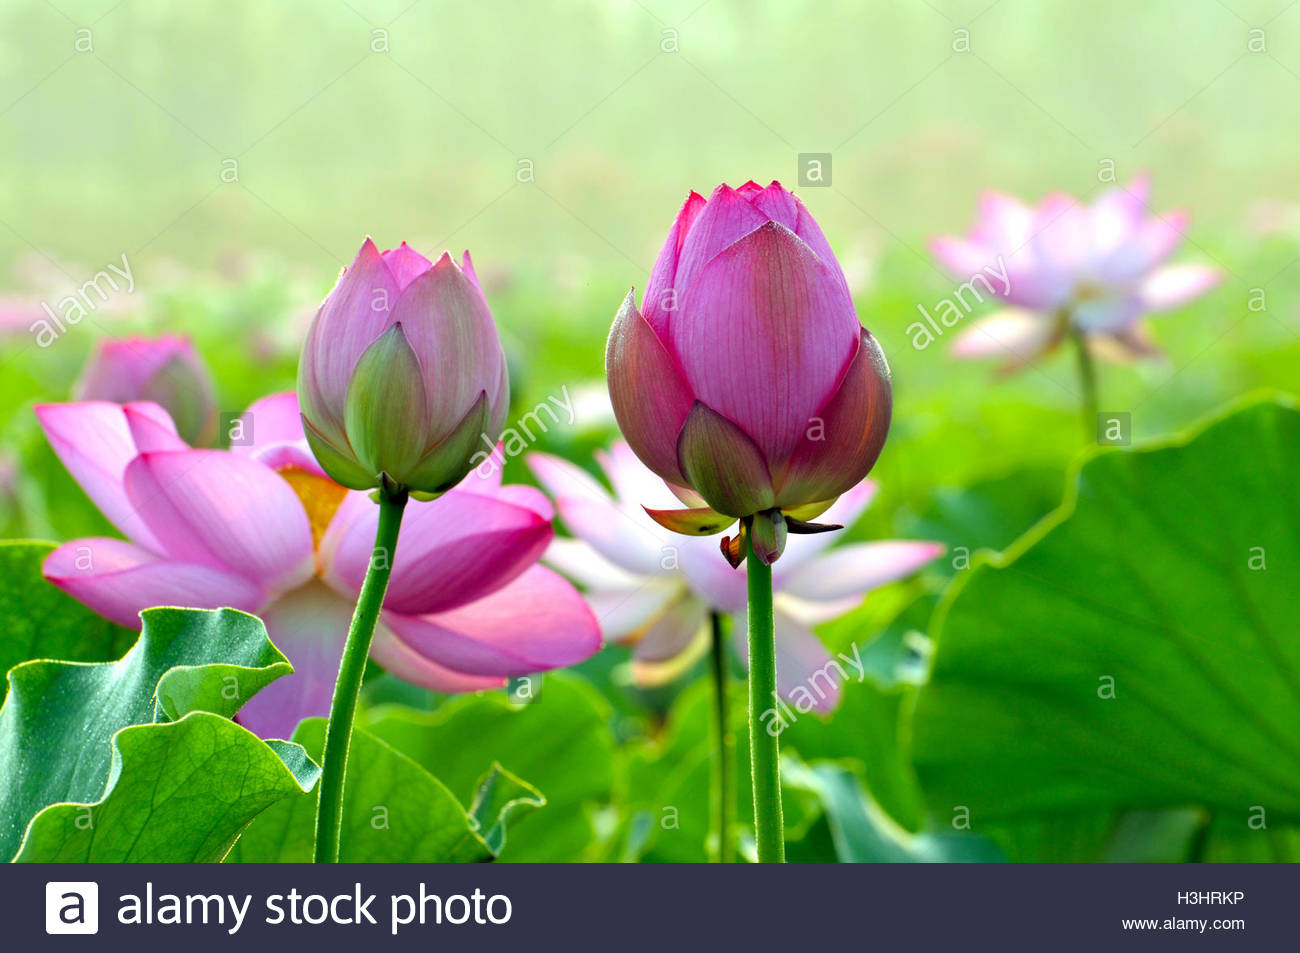 Lotus flower buds stock photos lotus flower buds stock images alamy lotus flower buds in sunset stock image izmirmasajfo